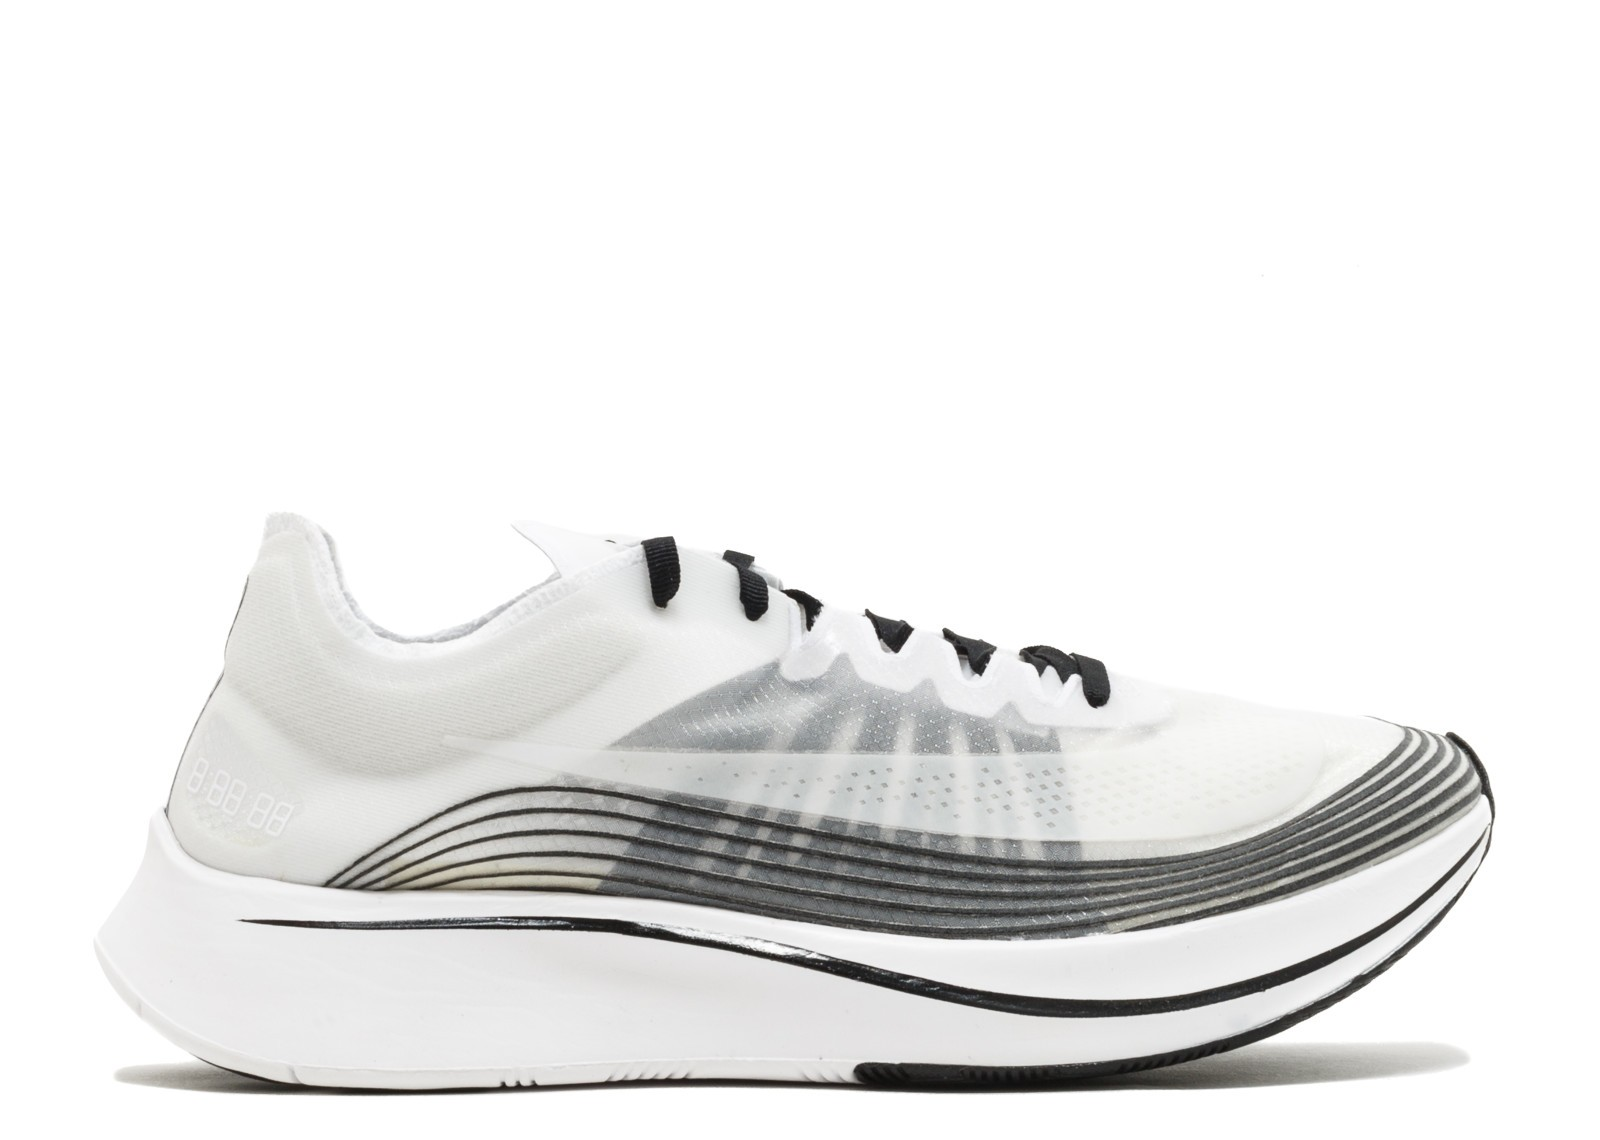 2dca3c76a04a Prev Nikelab Zoom Fly Sp White Summit Black AA3172-101. Zoom